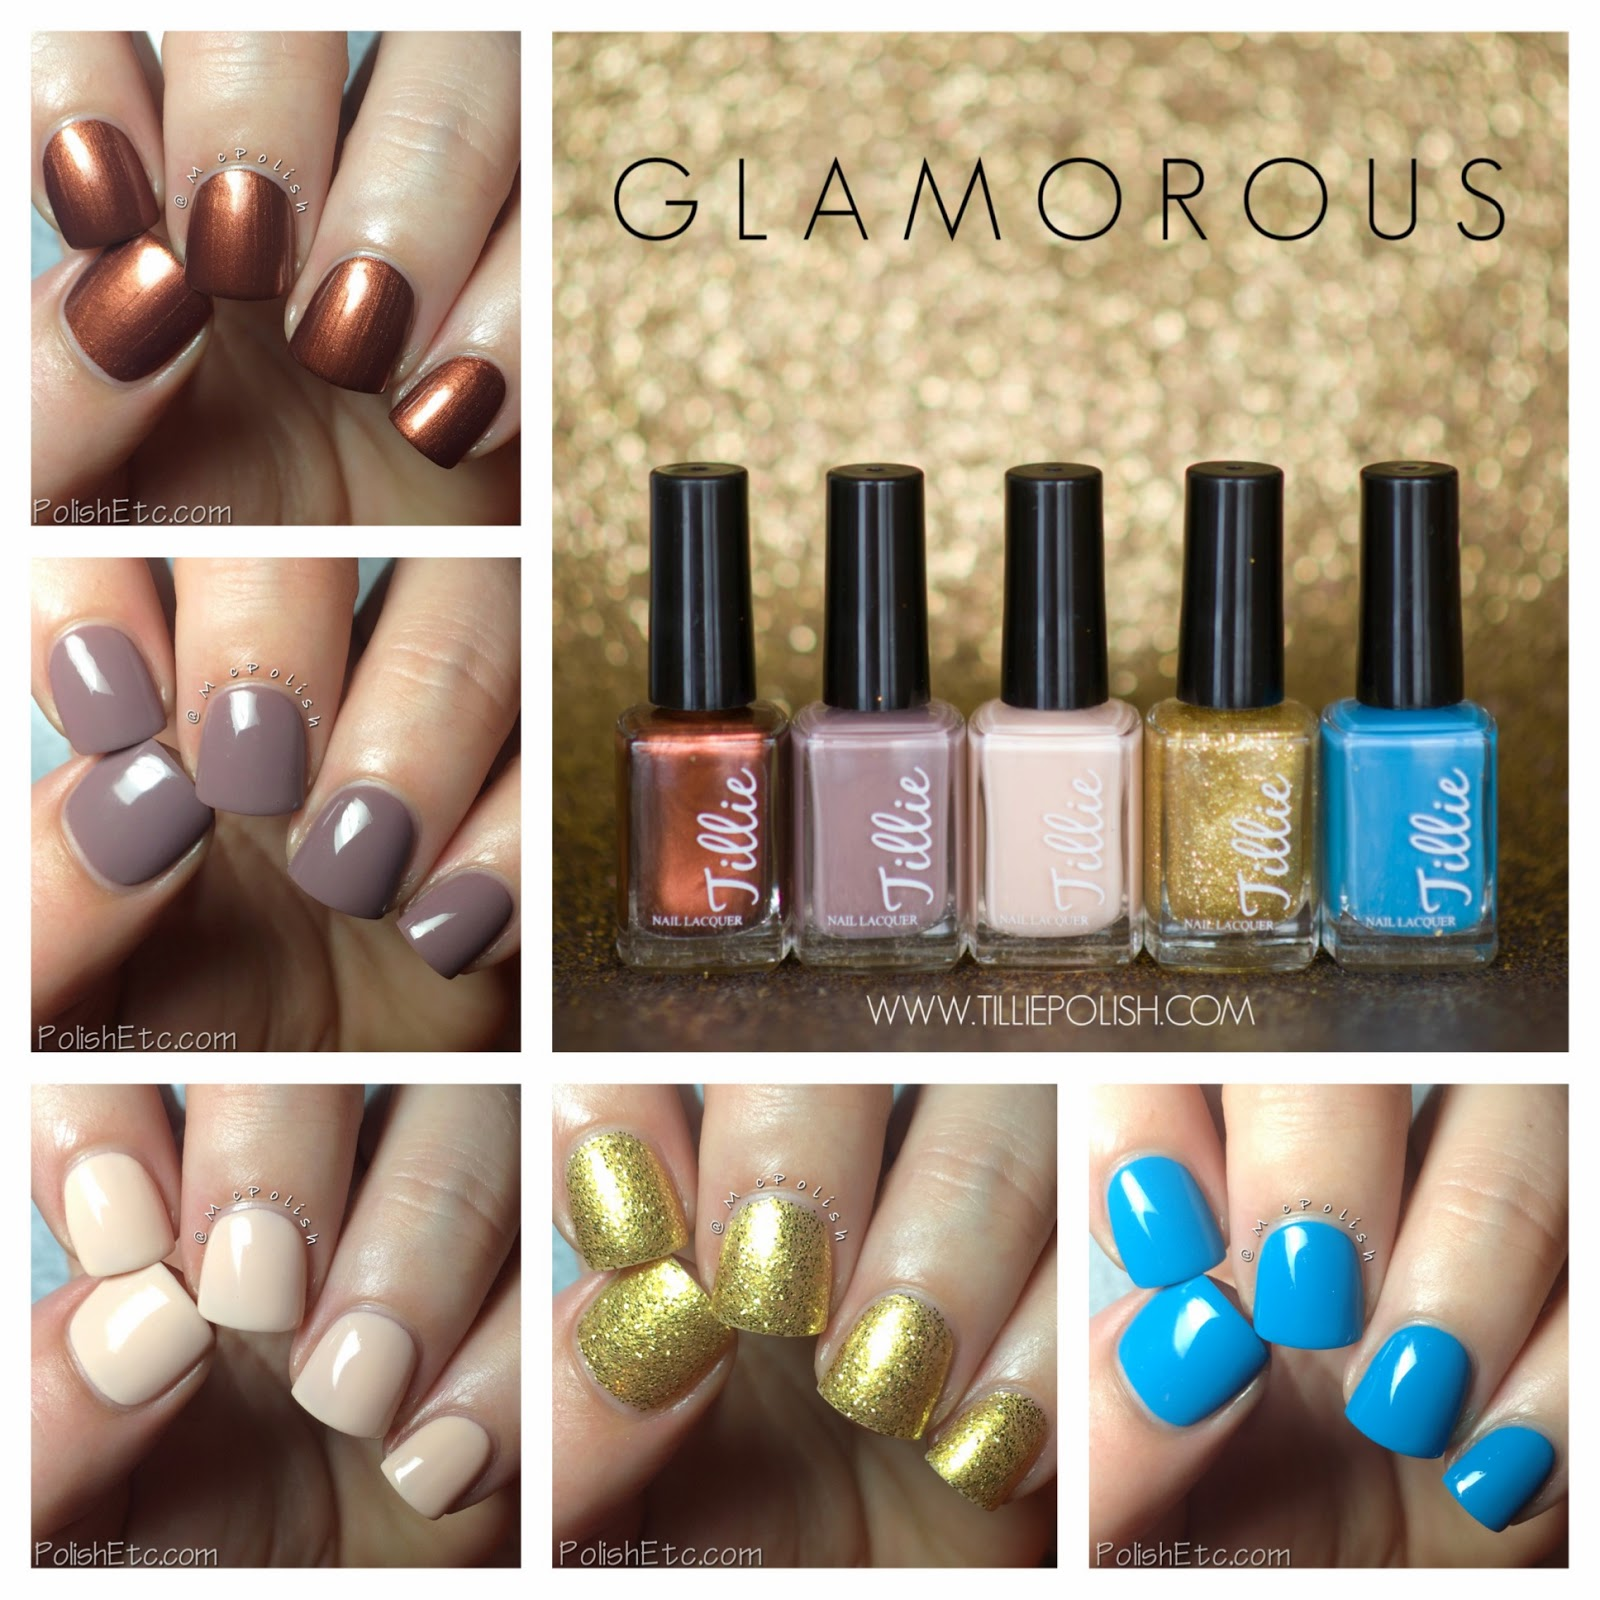 Tillie Polish Glamorous Collection - McPolish